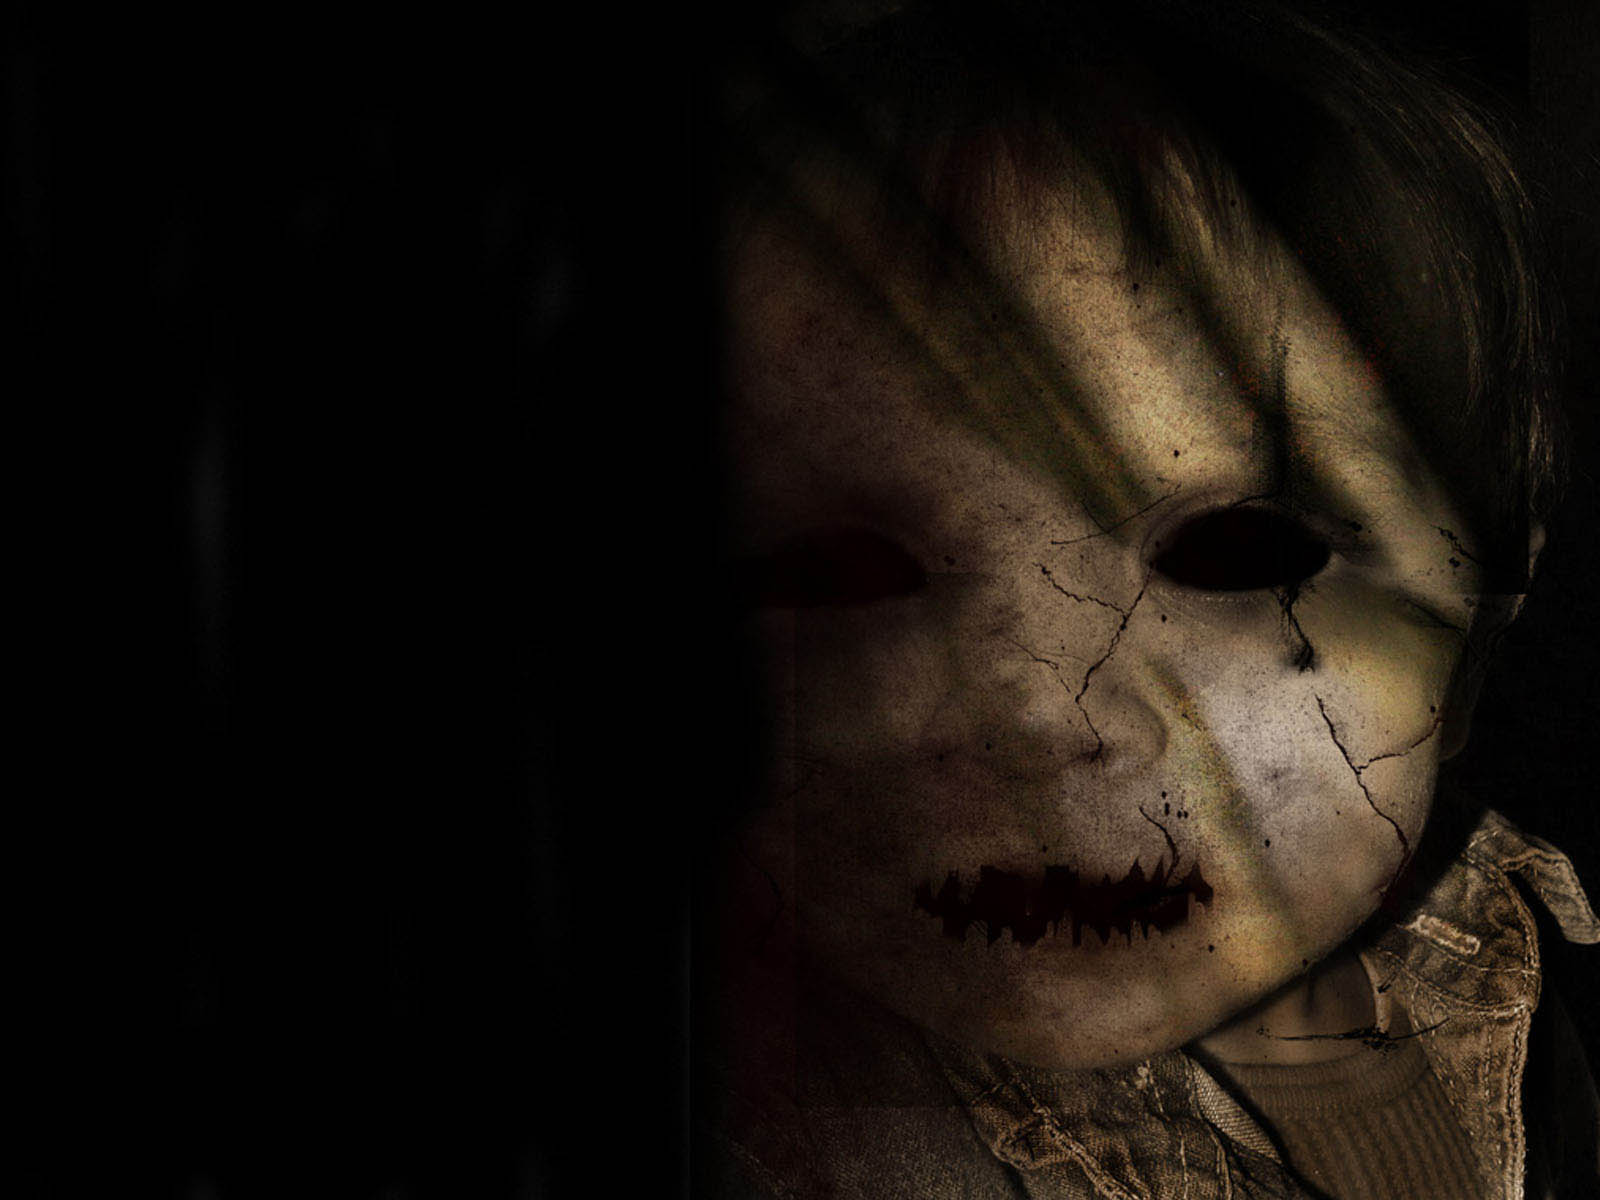 21  Horror Wallpapers, Scary, Creepy Backgrounds, Images, Pictures ...